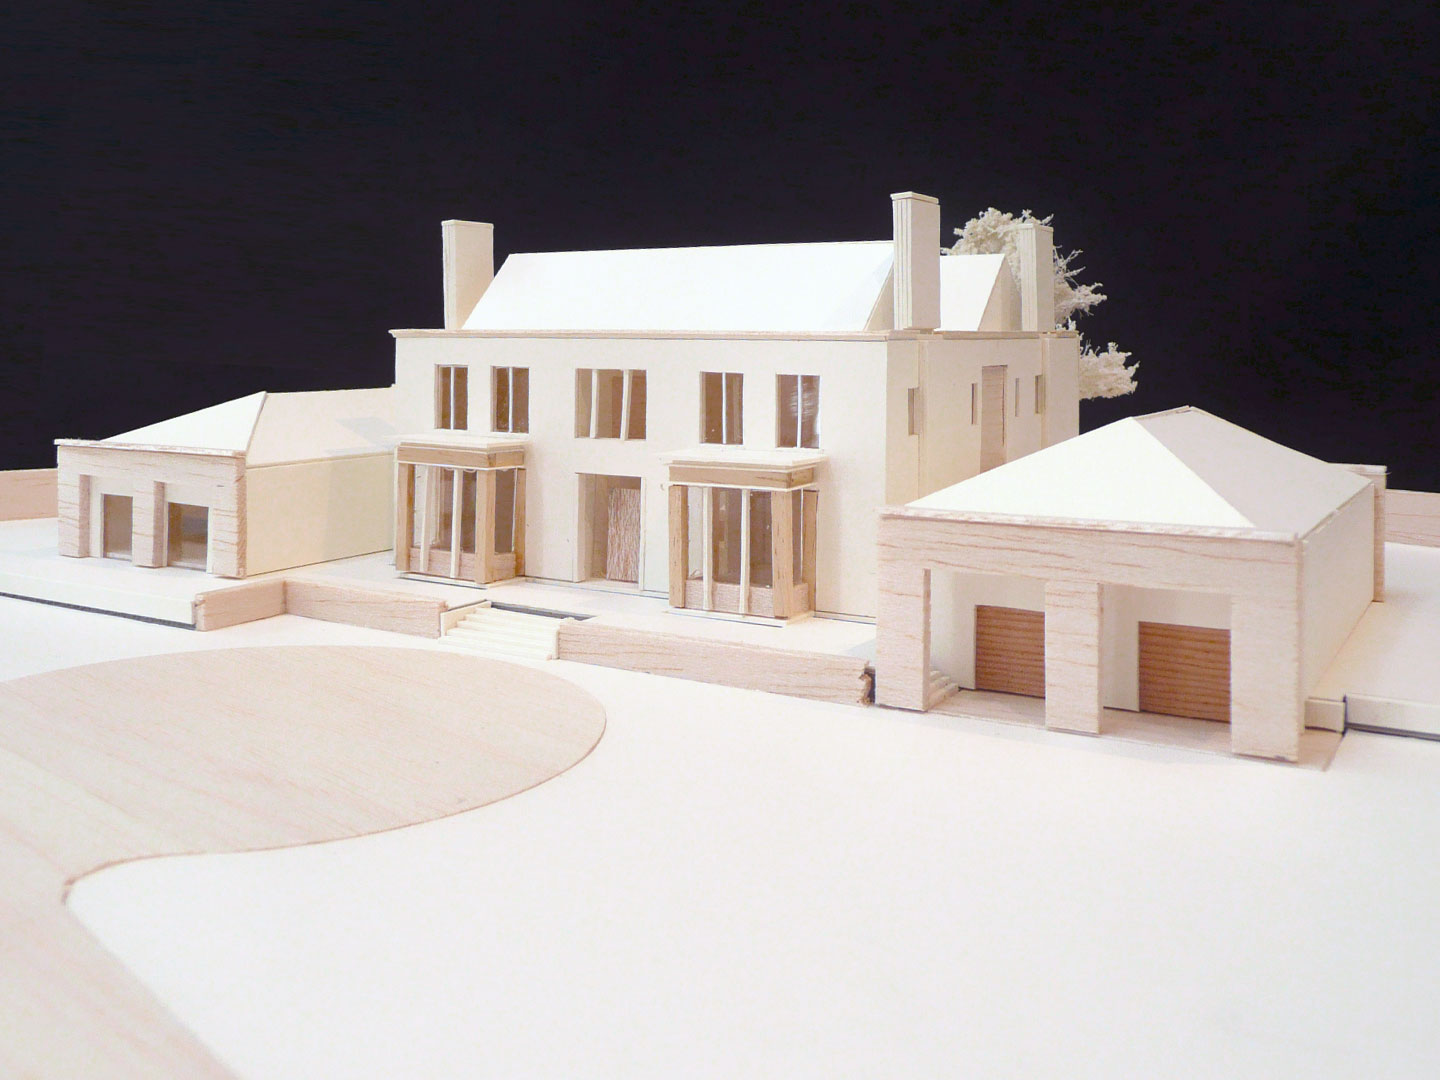 greenacres-model_front_01